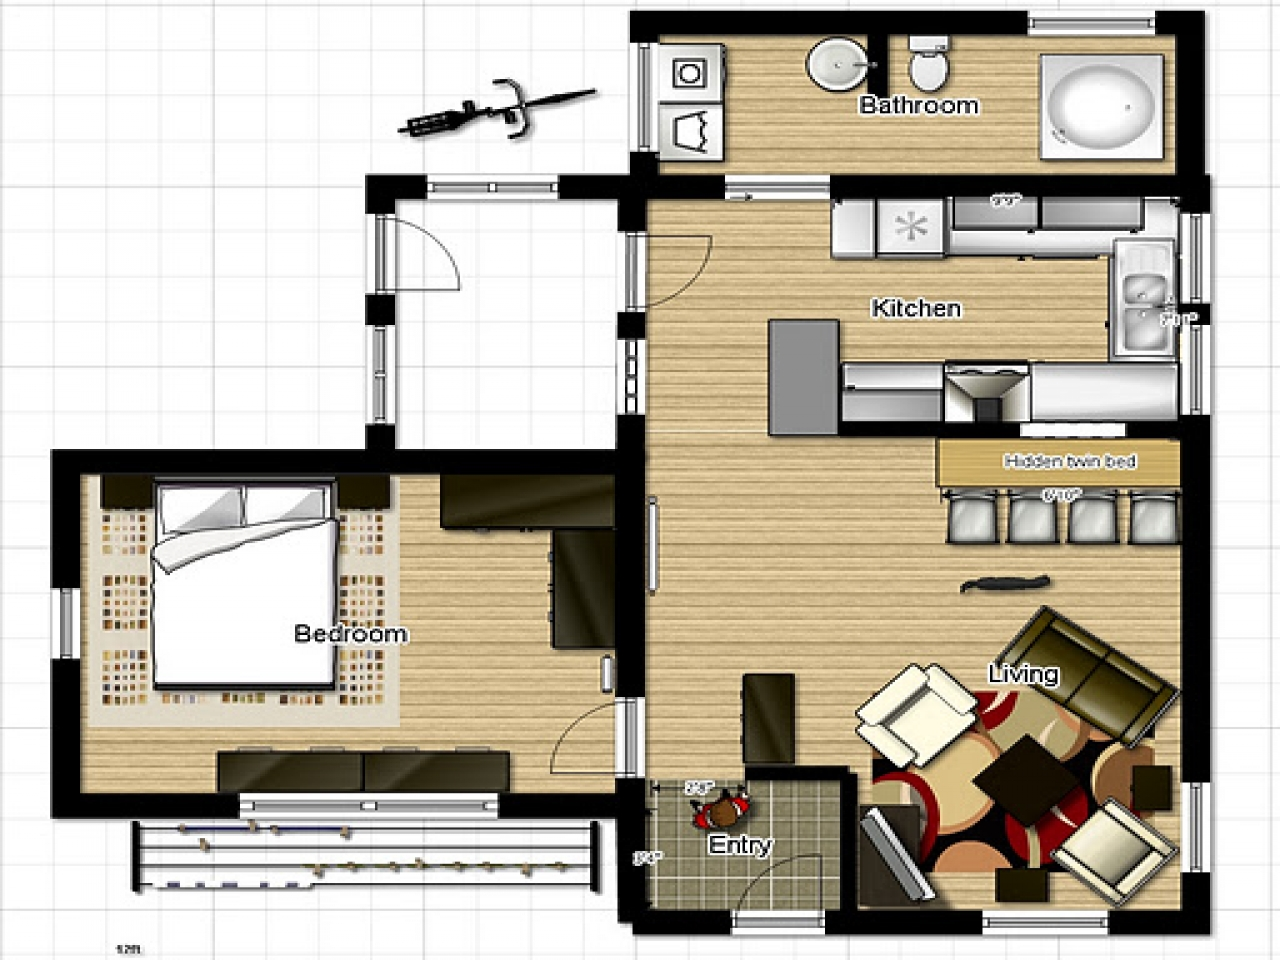 Small Homes And Cottages Small One Bedroom House Floor